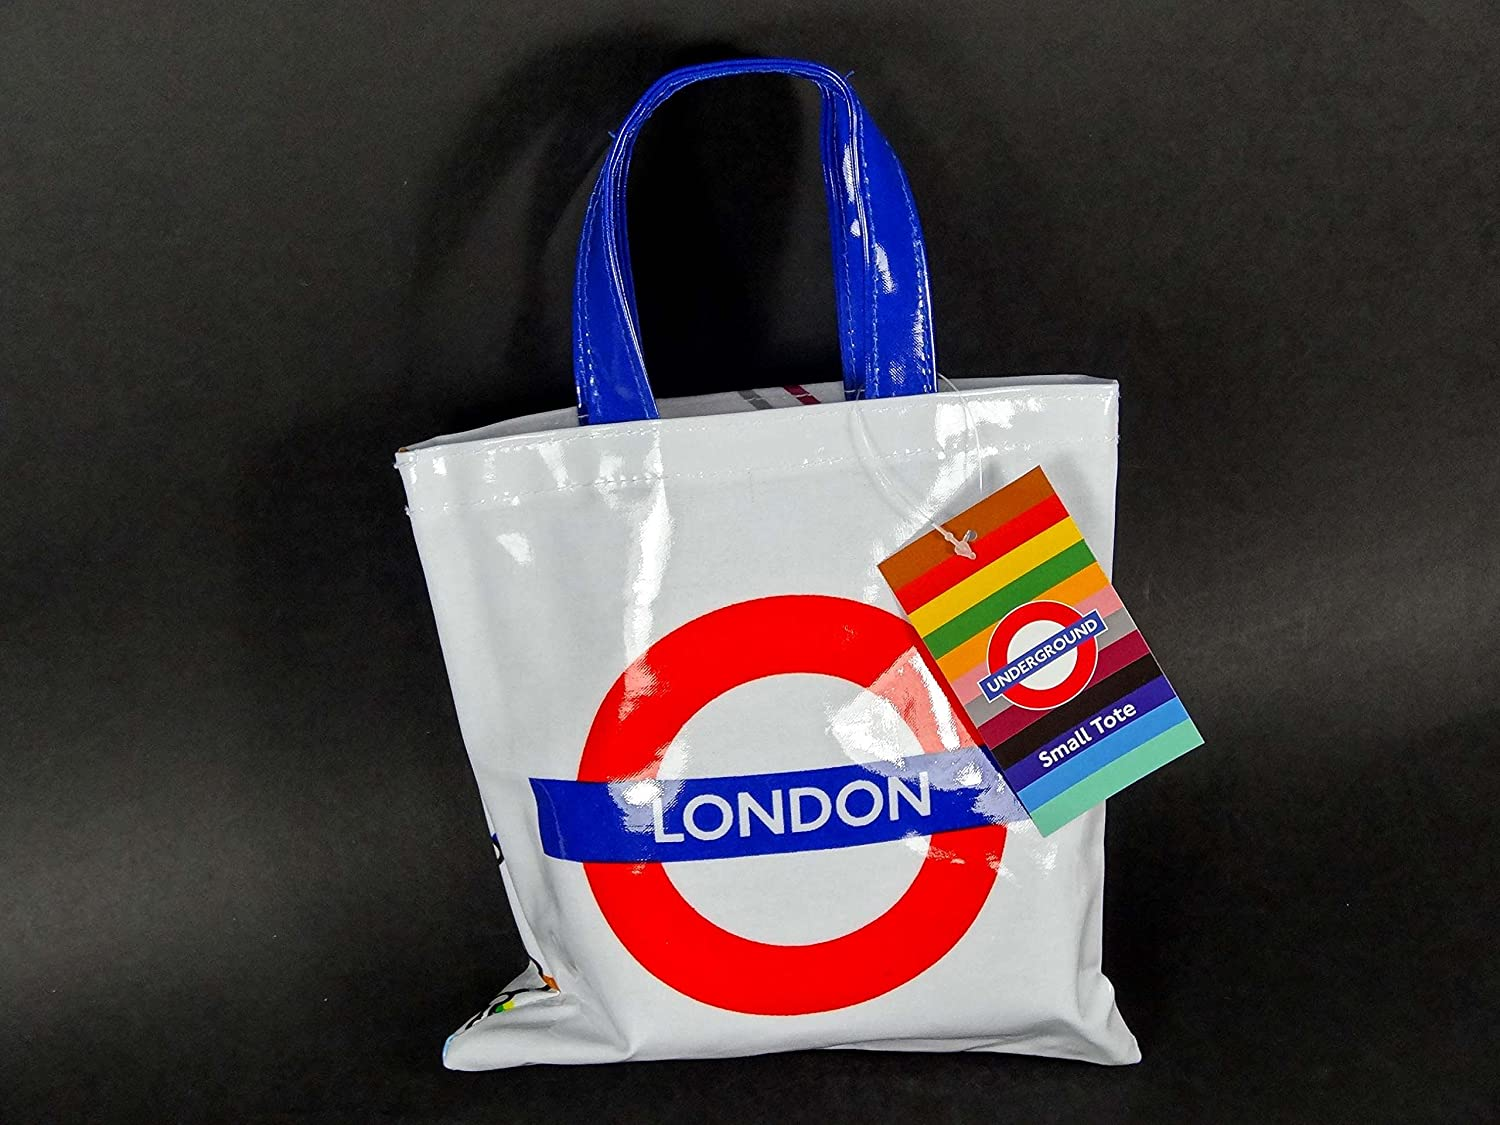 d3fd5ac68c Small PVC Bag - Plastic Coated Canvas Bag with Underground Map and London  Roundel Print, Transport for London Souvenir: Amazon.co.uk: Kitchen & Home